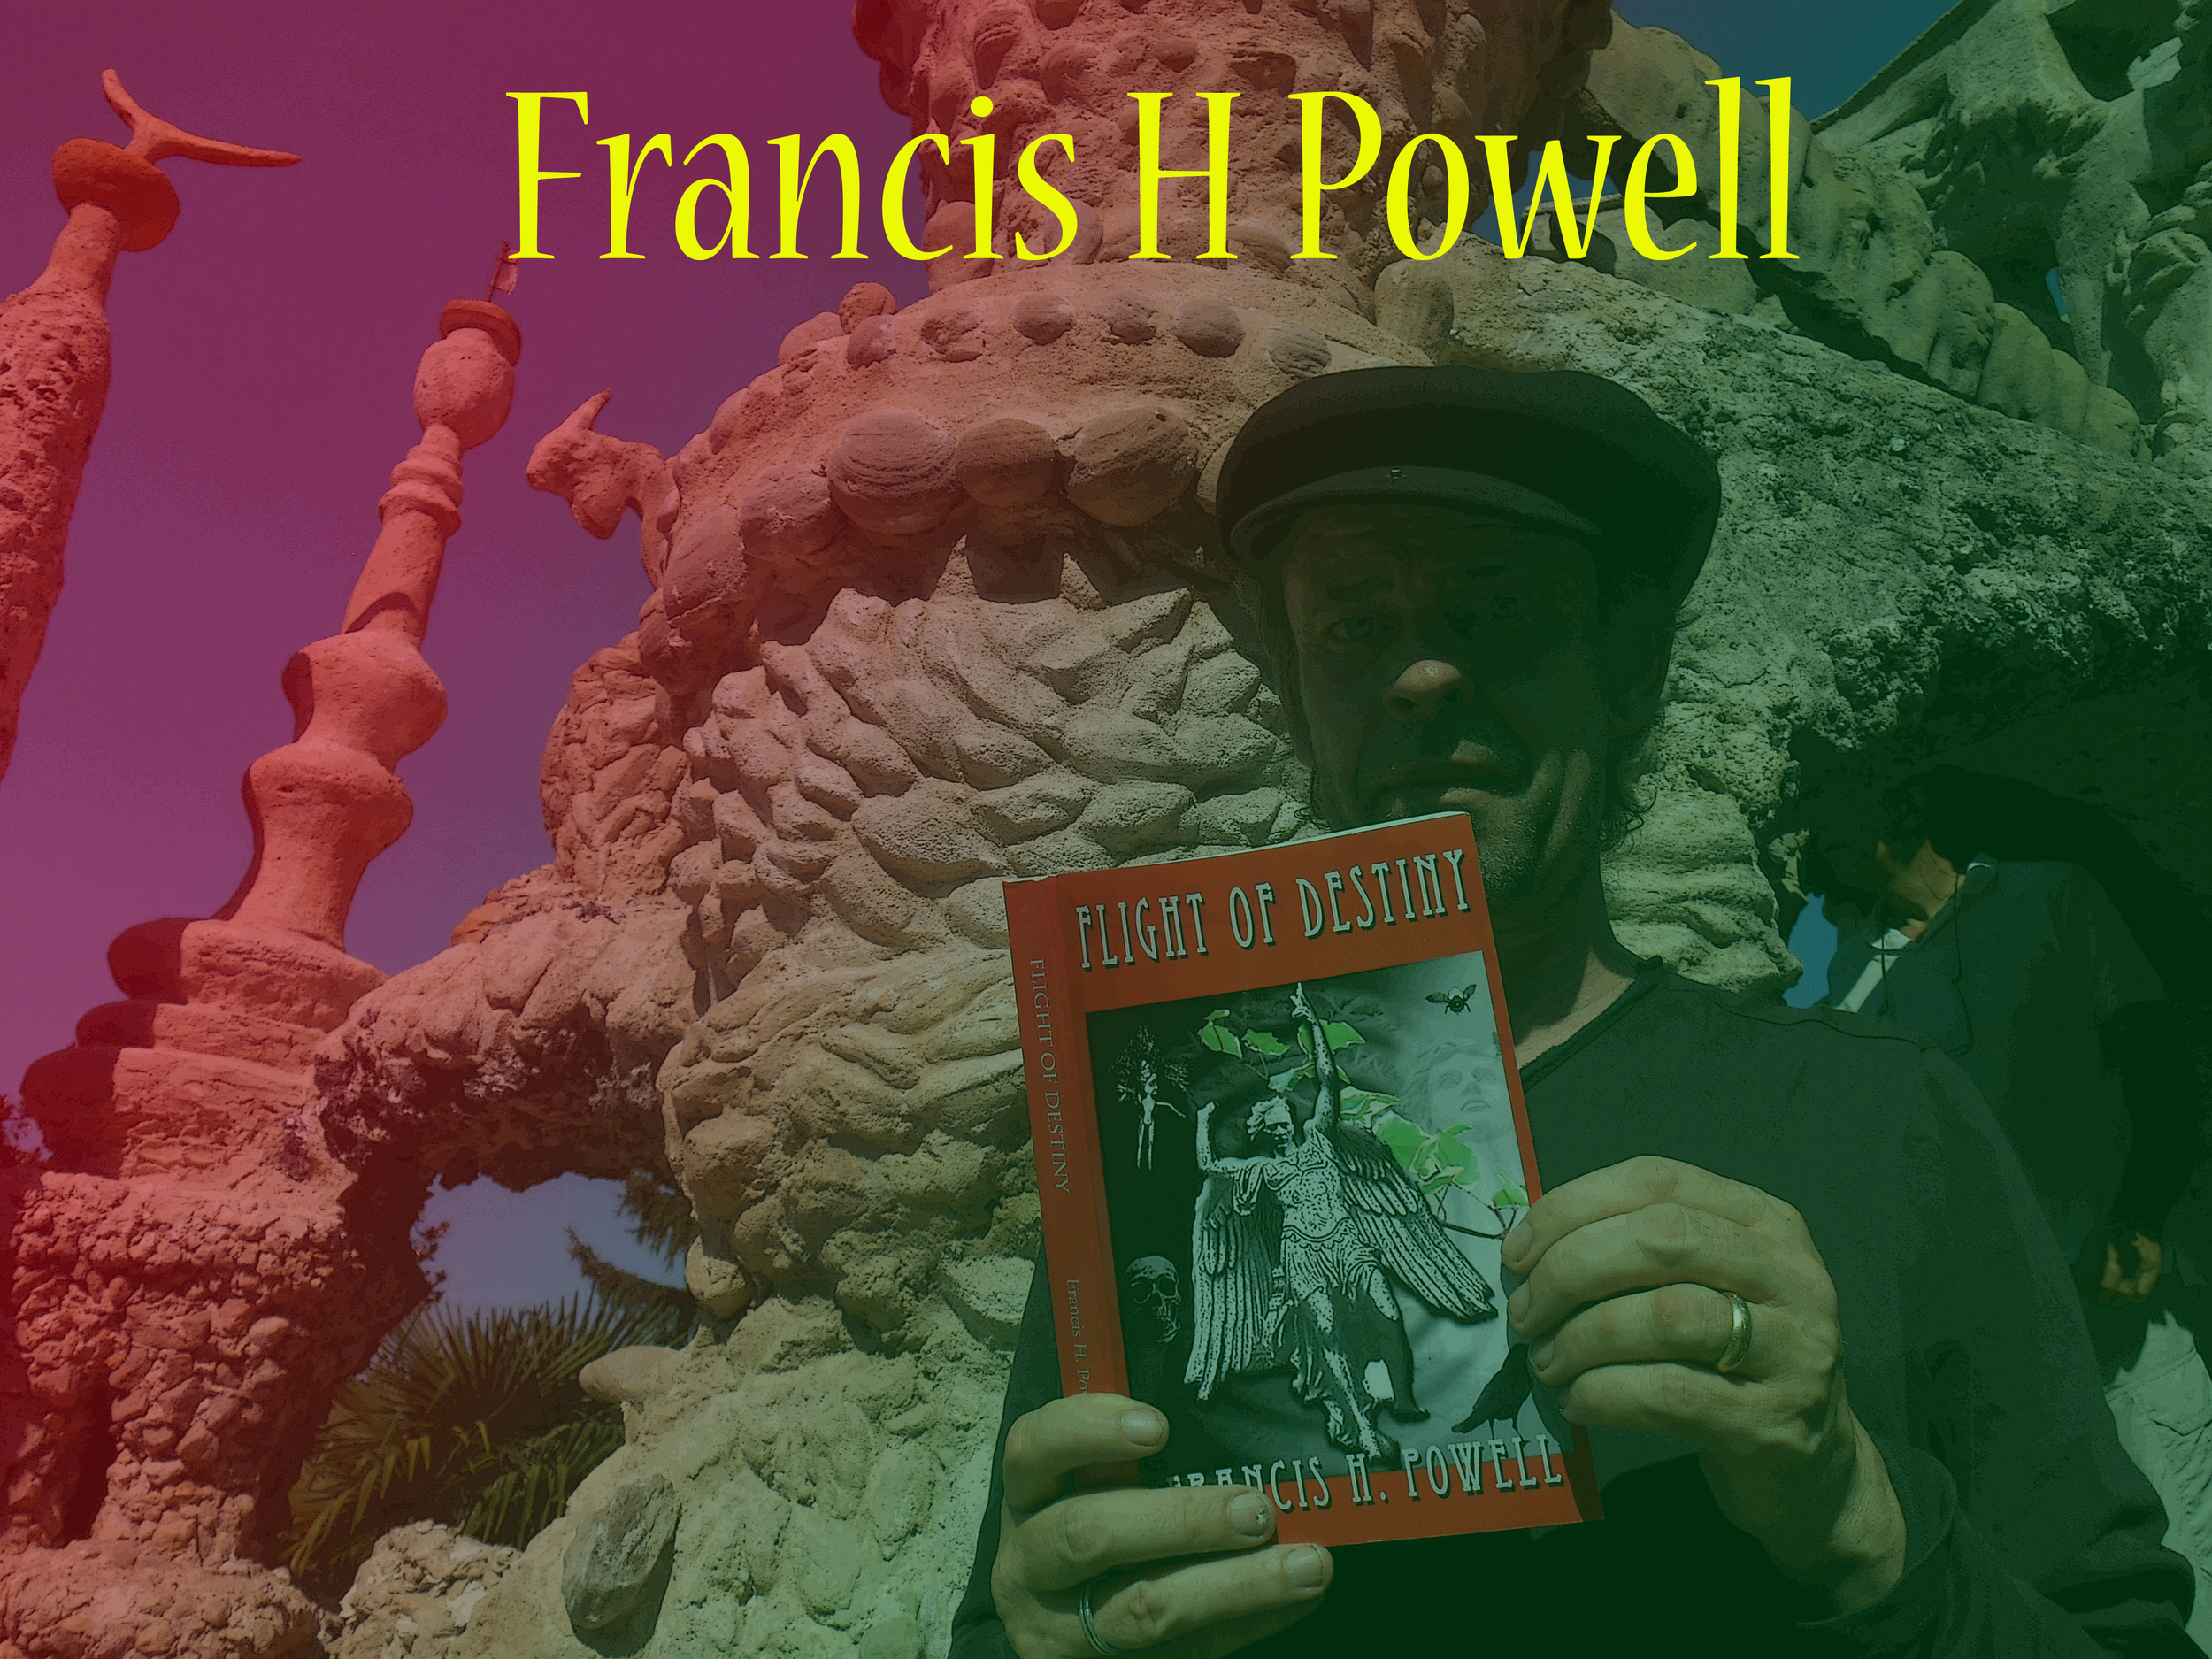 Author Francis H. Powell with his book Flight of Destiny